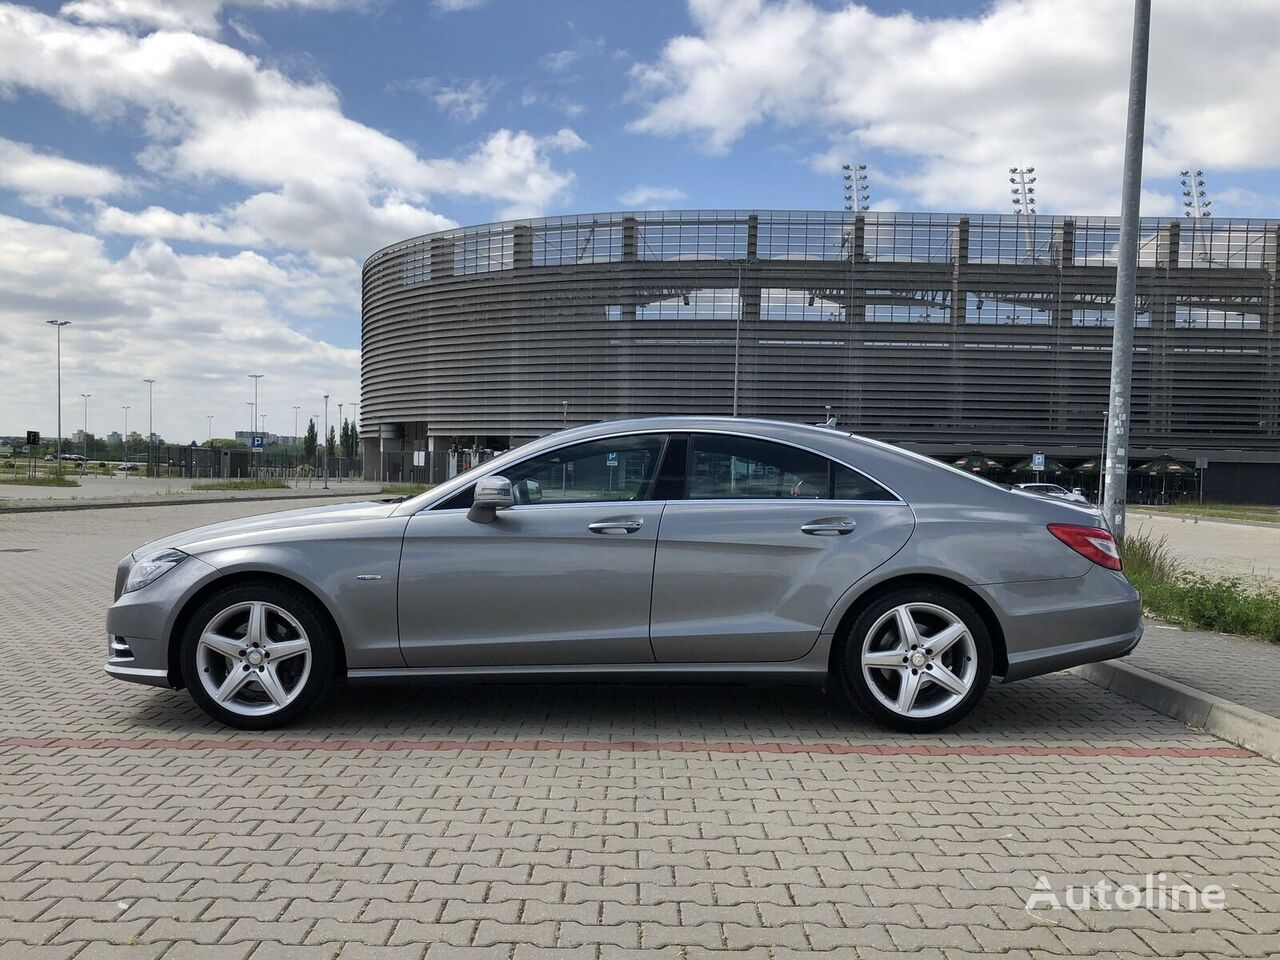 MERCEDES-BENZ CLS 350 CDI 4-matic coupe